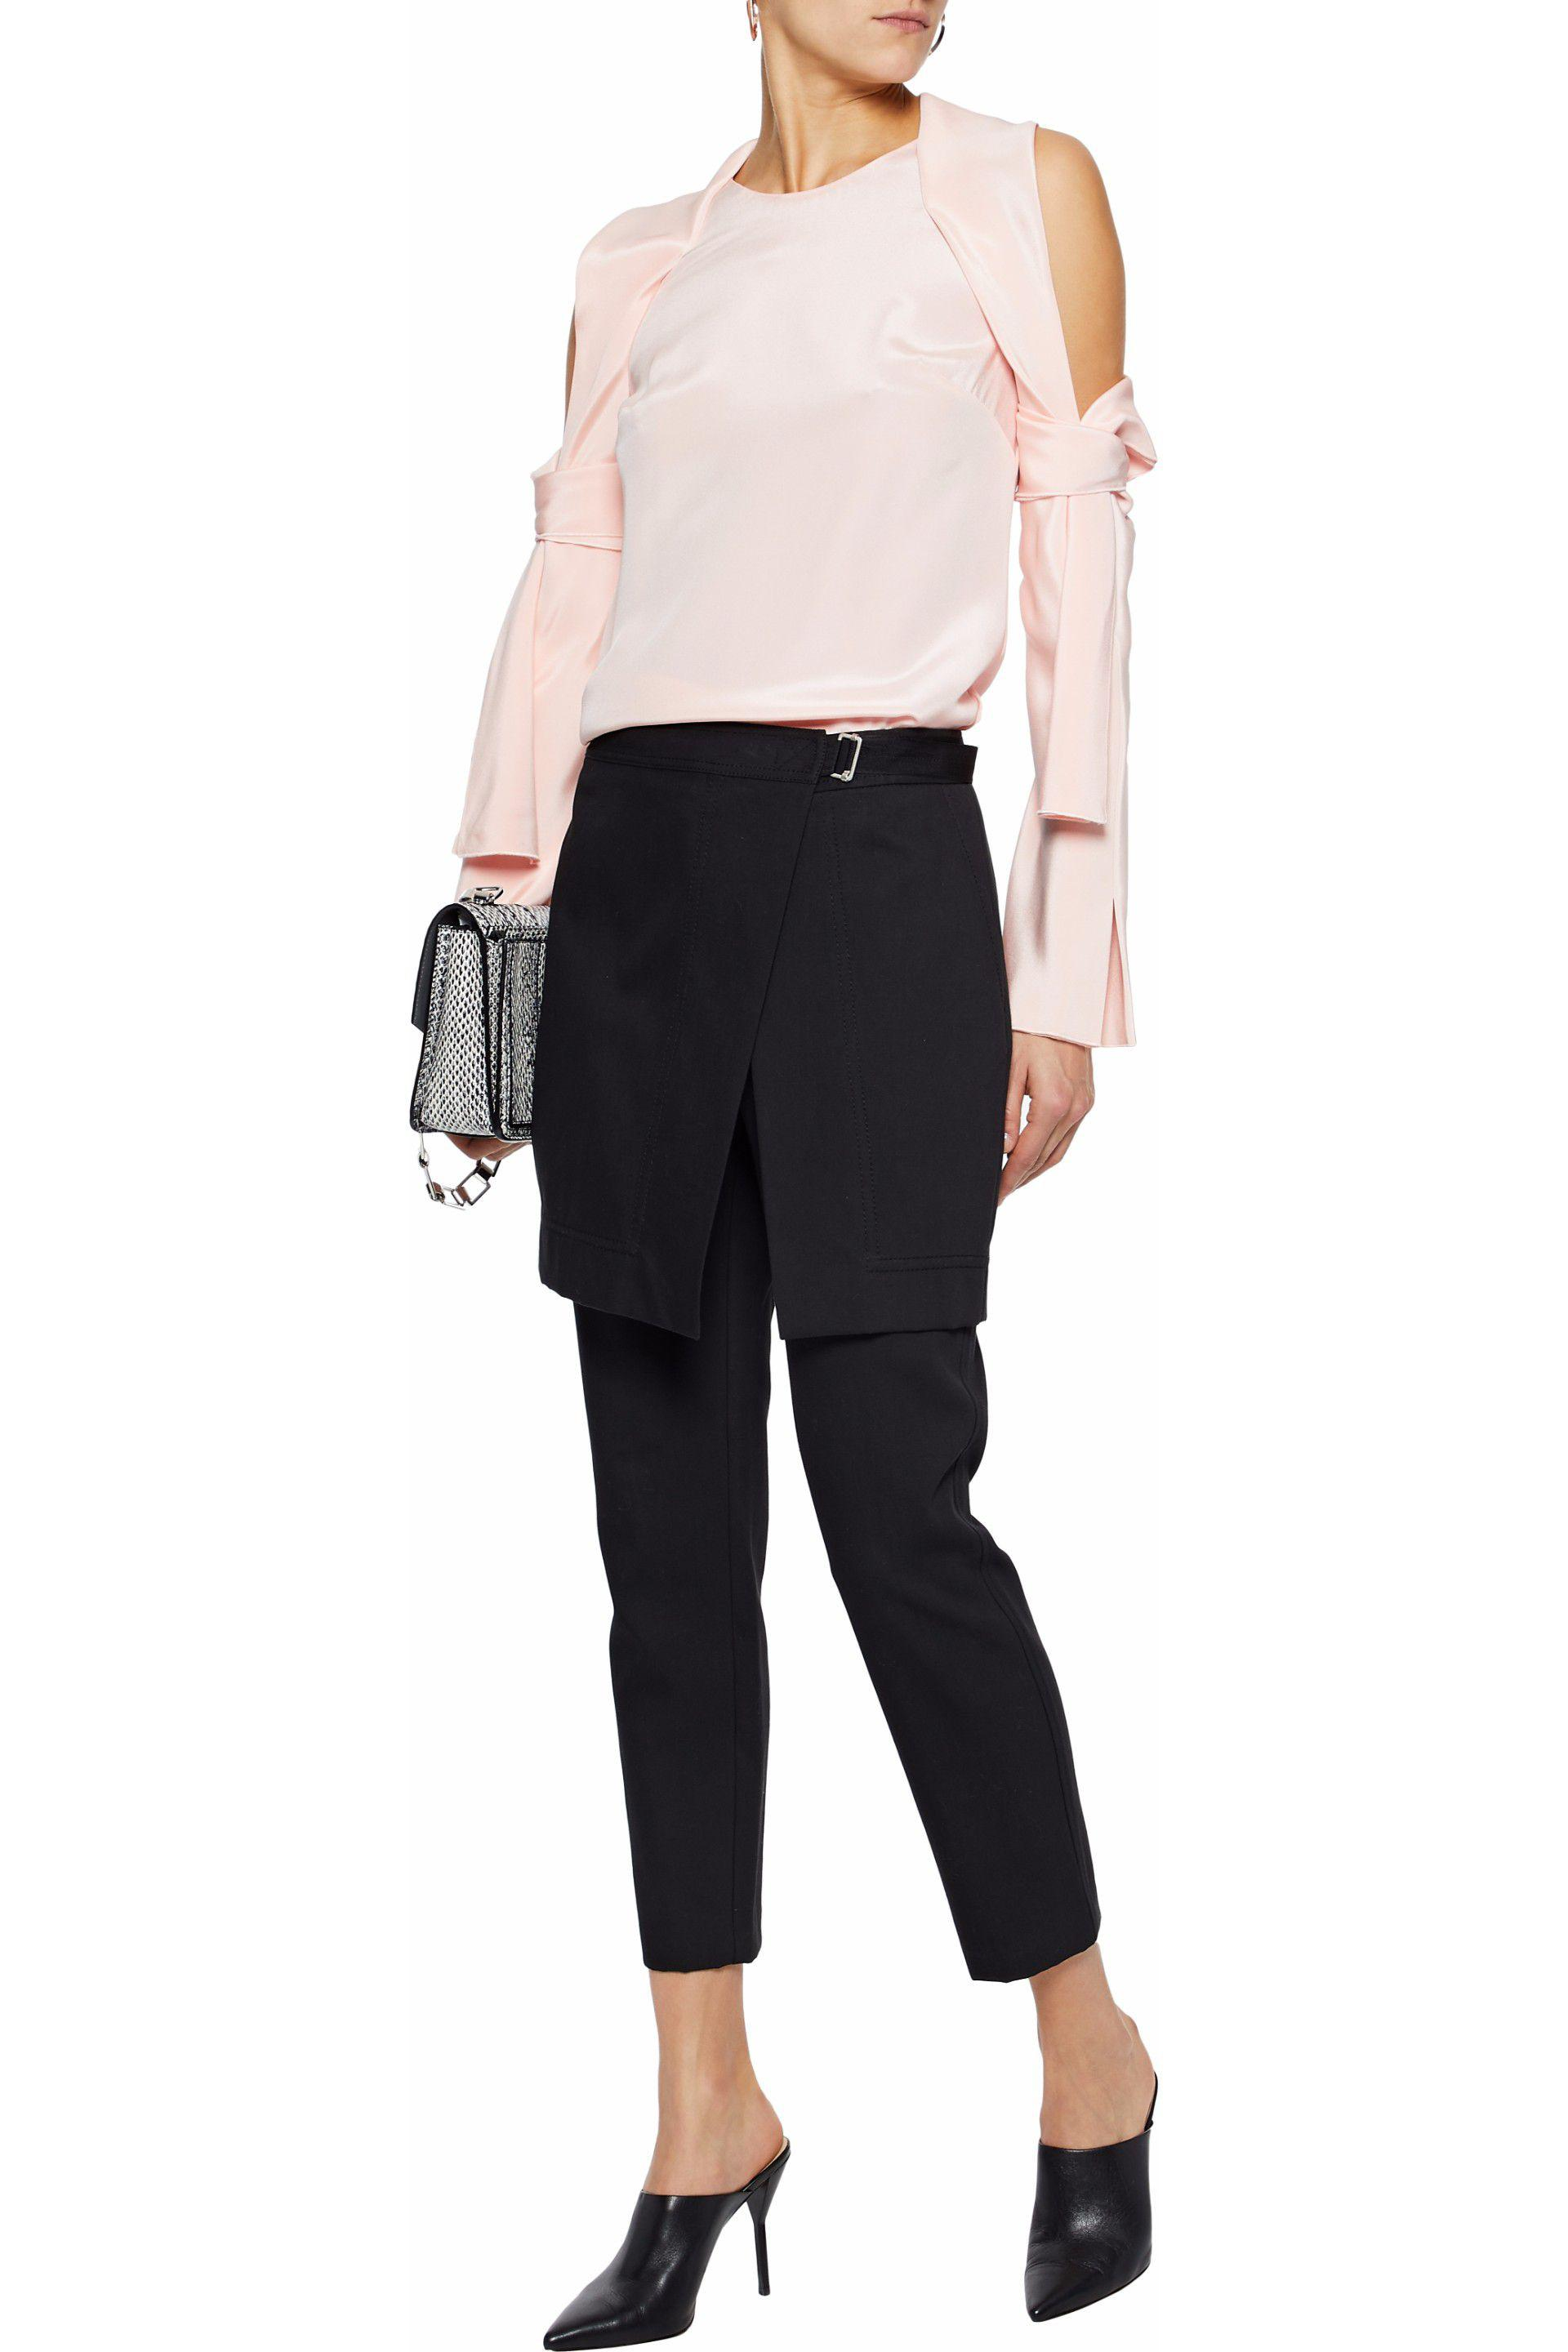 f85a98fafded52 Lyst - 3.1 Phillip Lim Cold-shoulder Silk Top in Pink